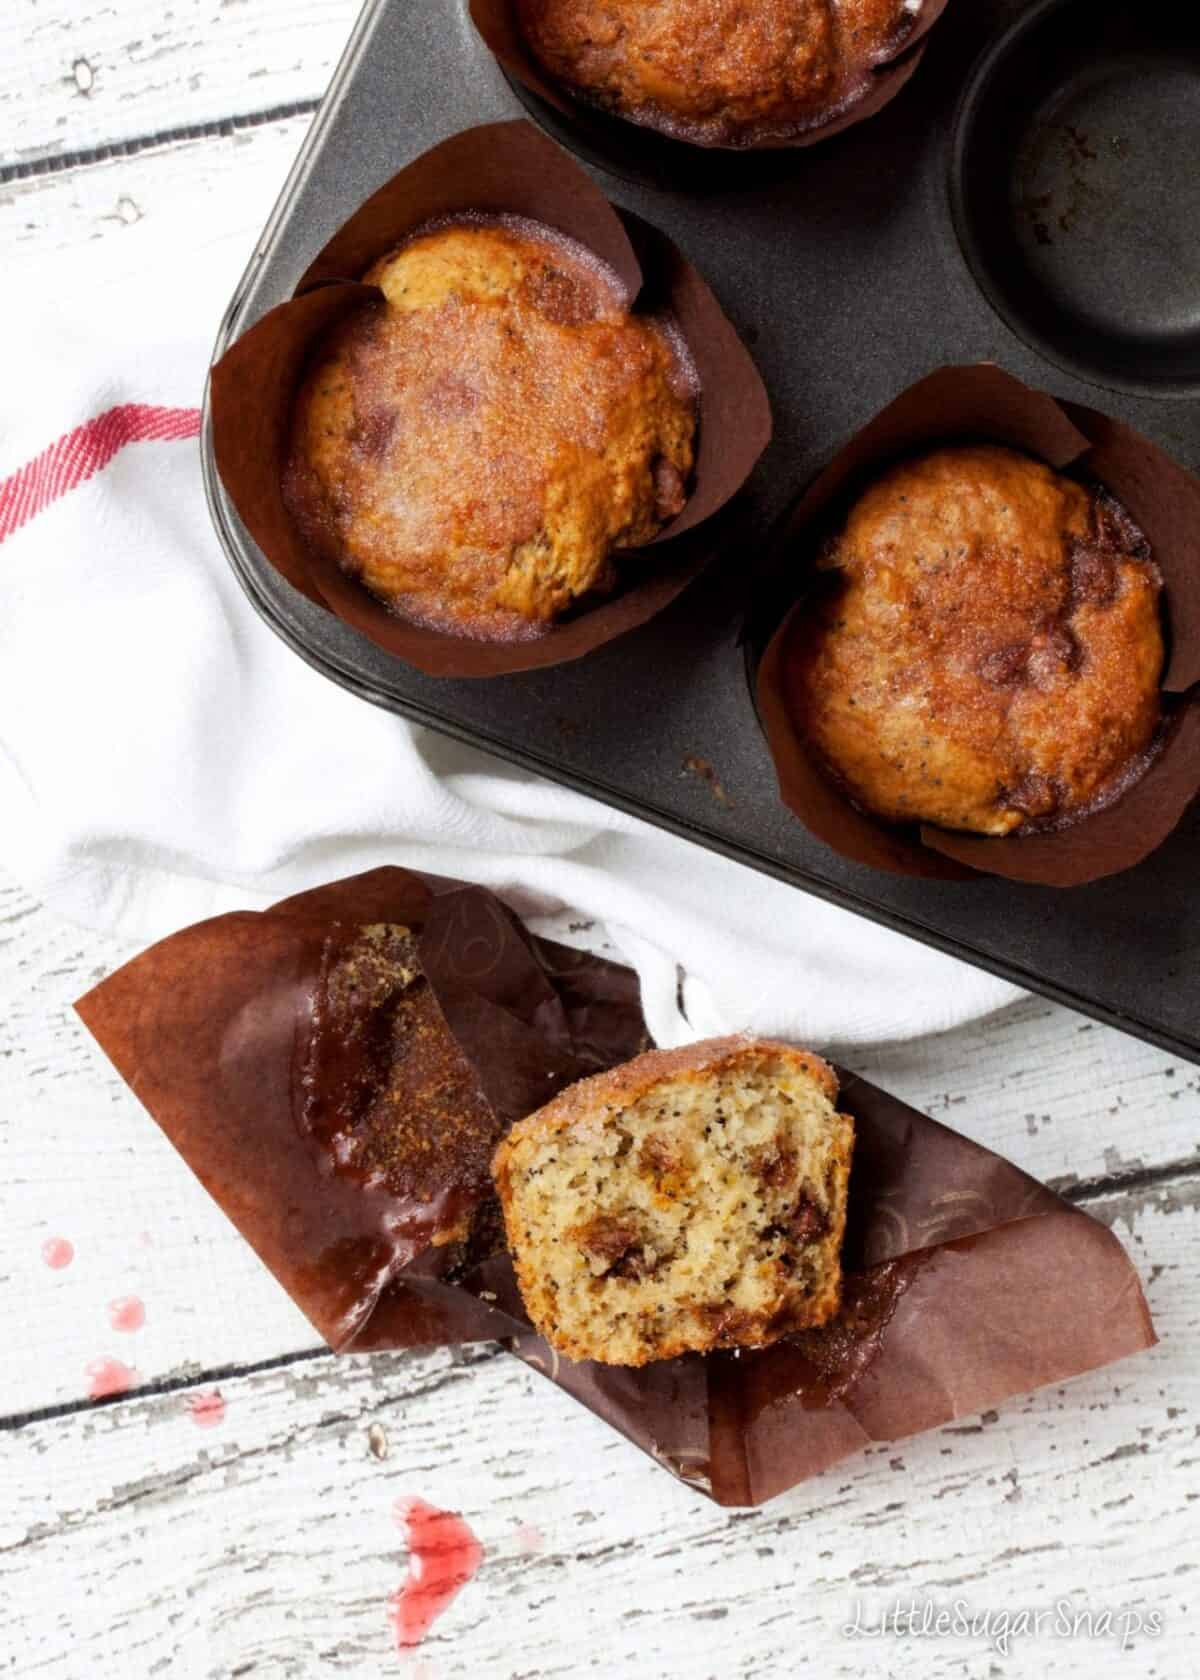 A tin of Orange Drizzle Muffins with one part eaten on the table.